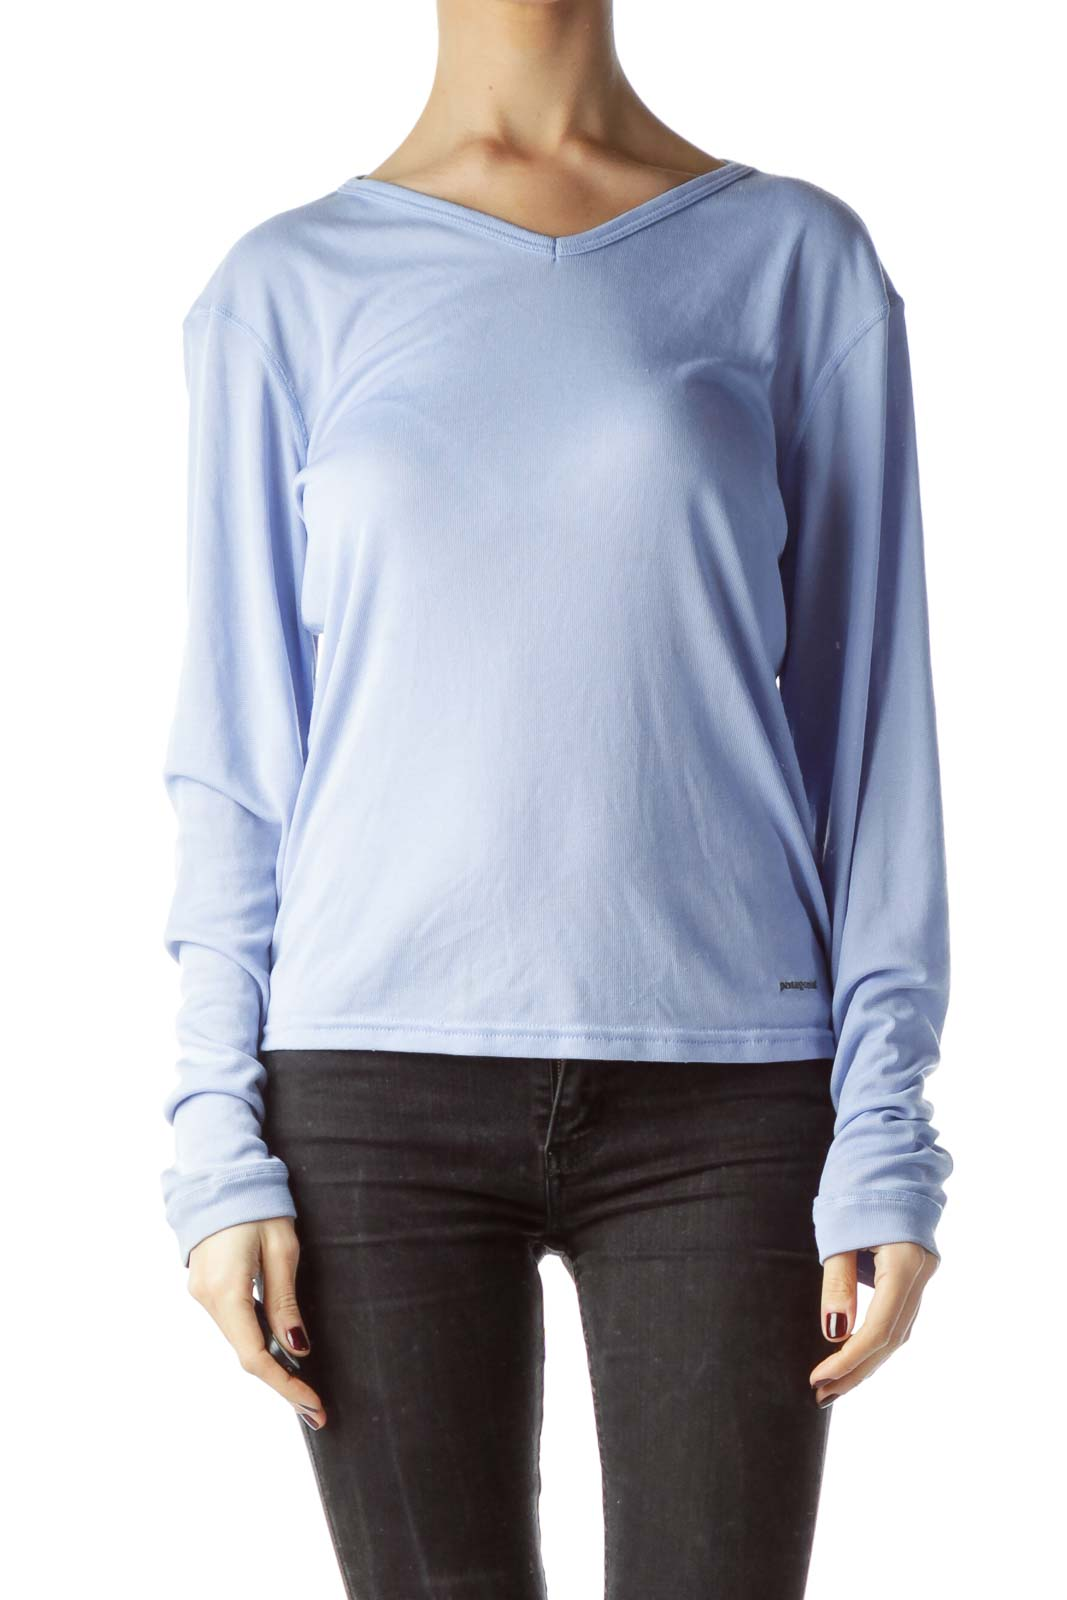 ffdf45575 Shop Baby Blue Stretch Long Sleeve Knit Top clothing and handbags at ...